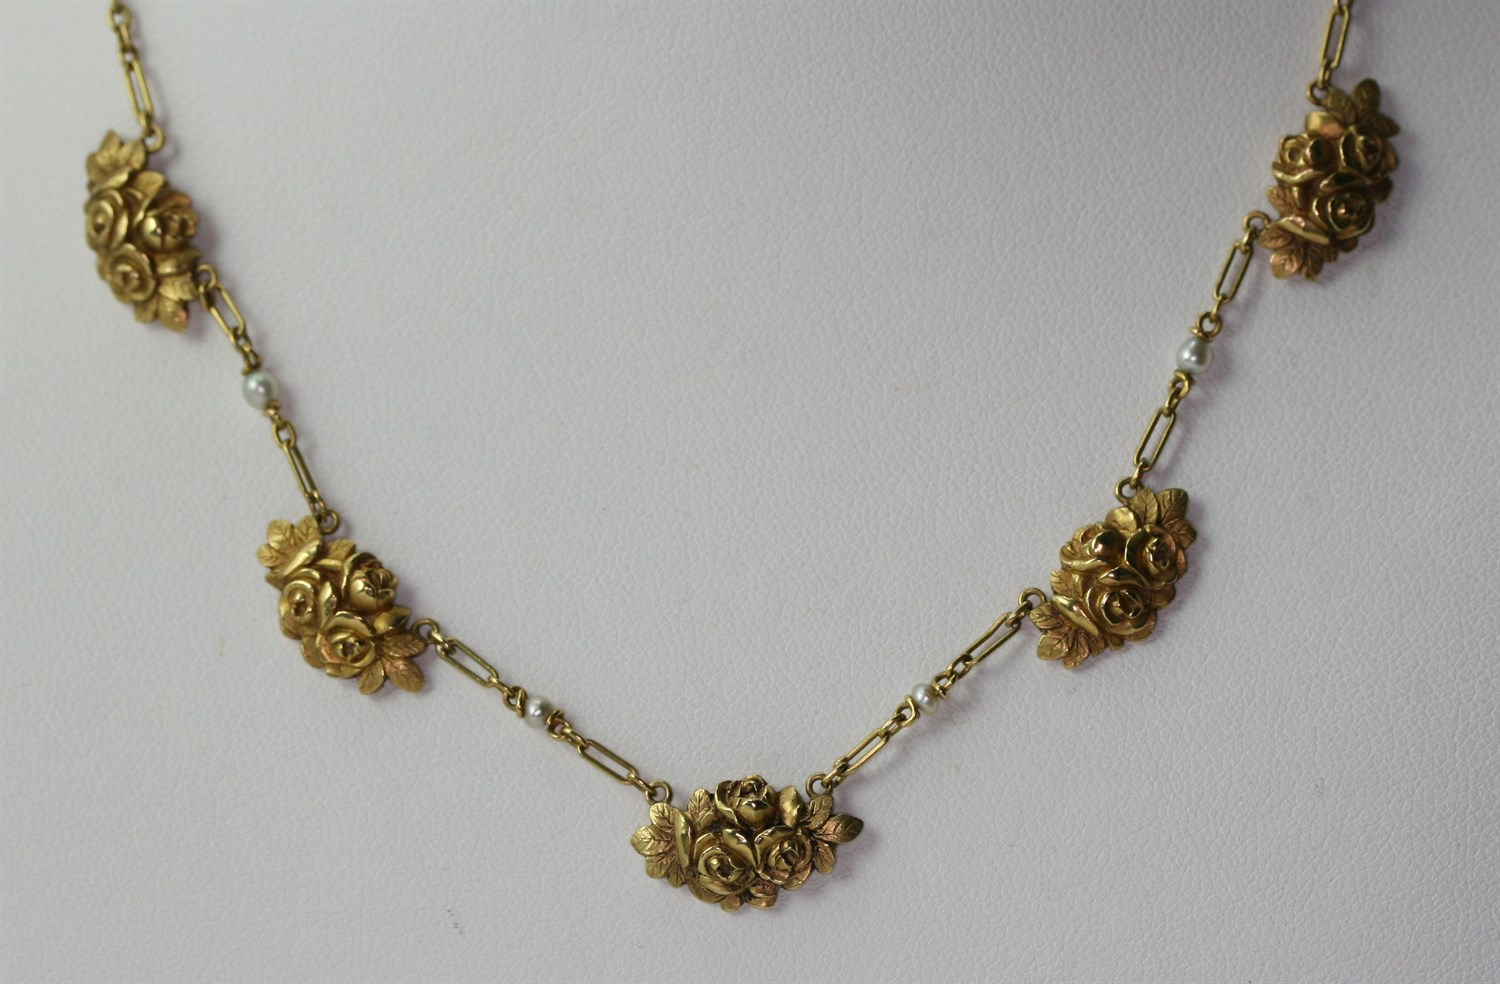 Lot 82 - An early 20th century French gold necklace